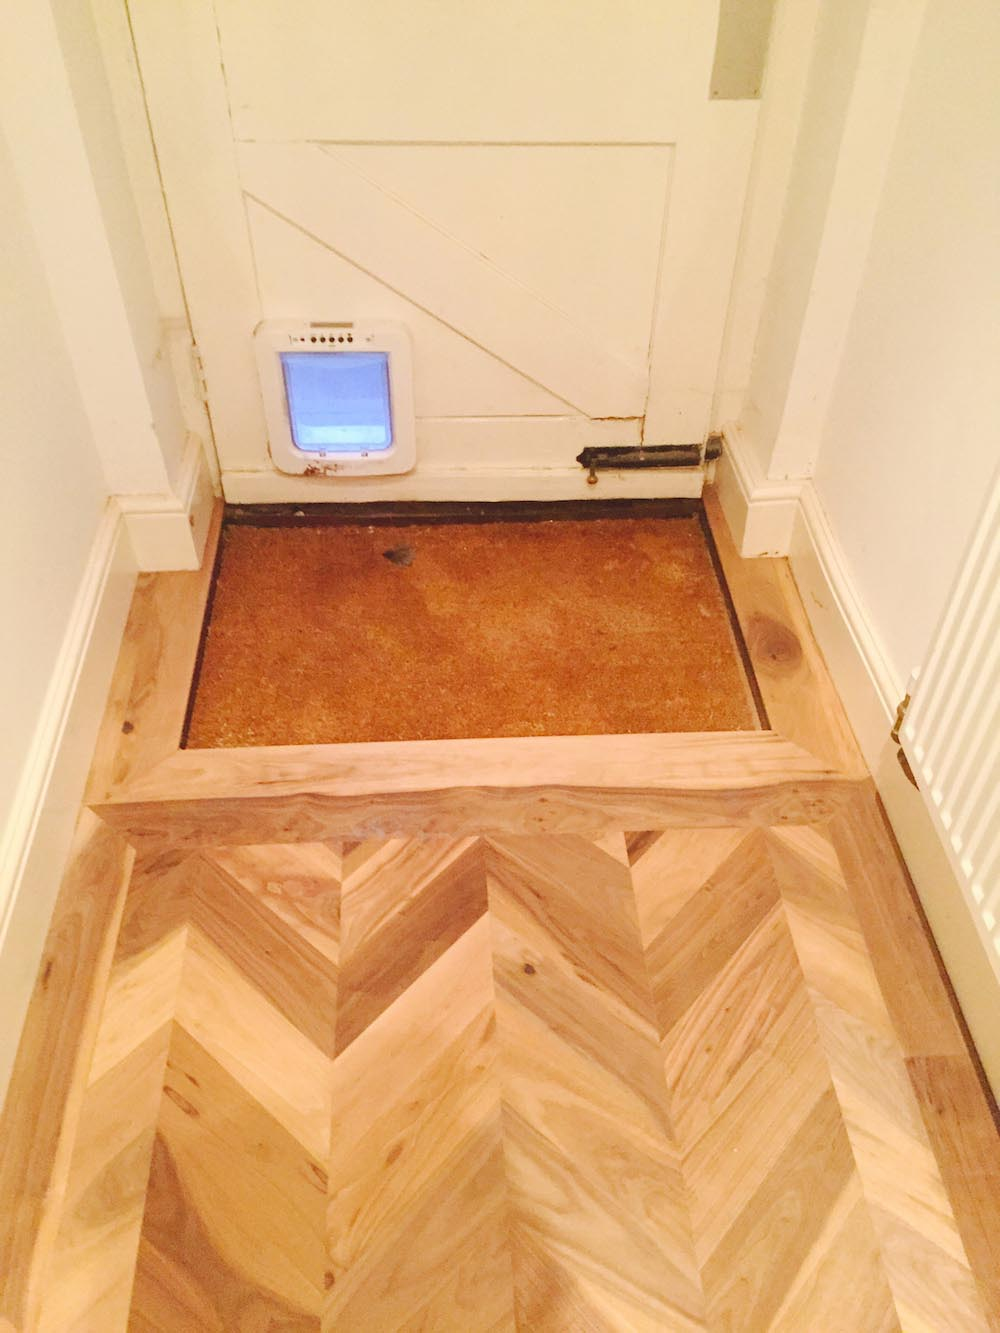 Walnut Chevron floor up to doorway